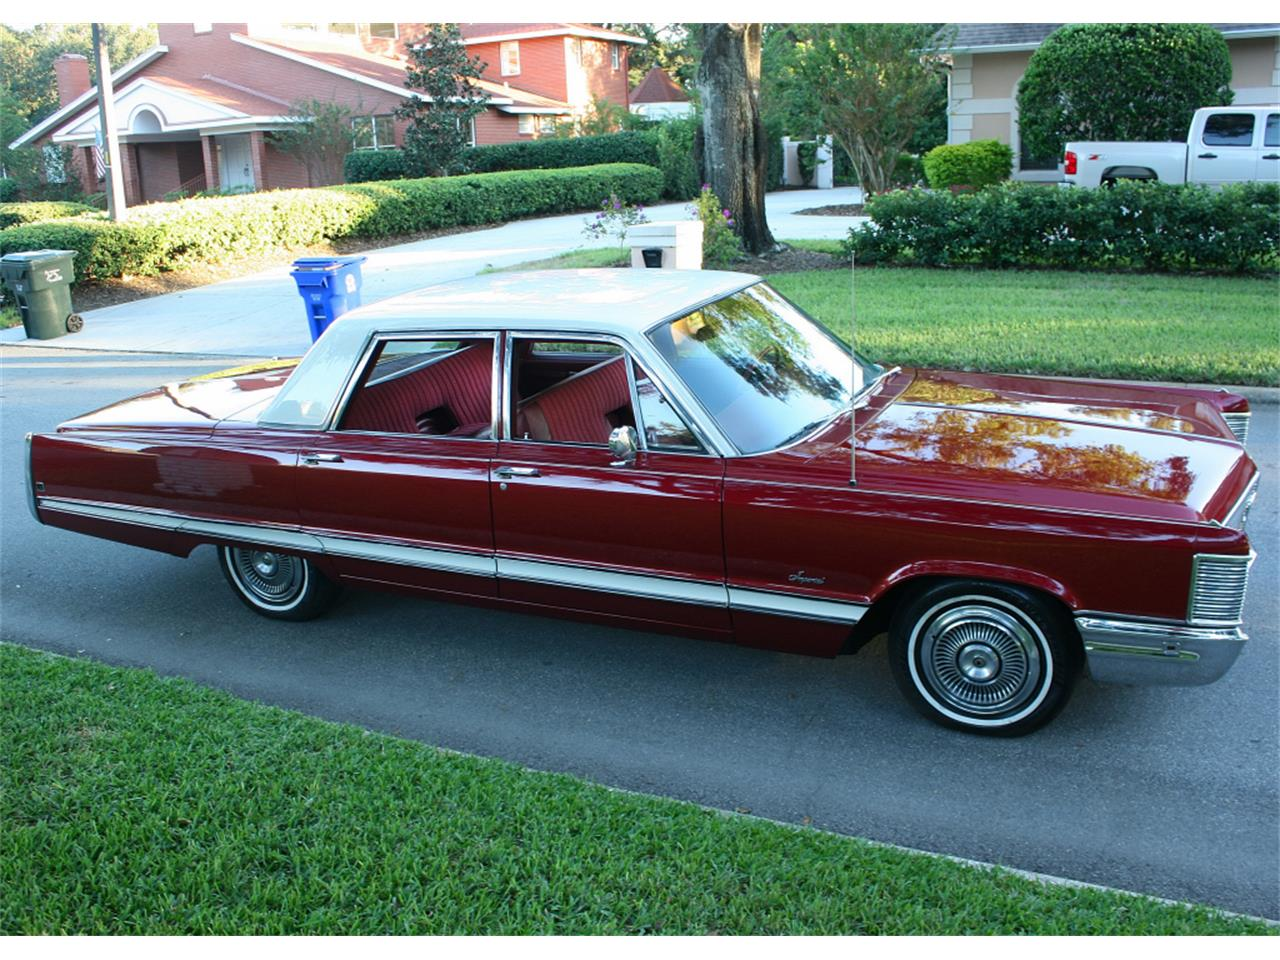 1968 Chrysler Imperial for sale in Lakeland, FL – photo 12